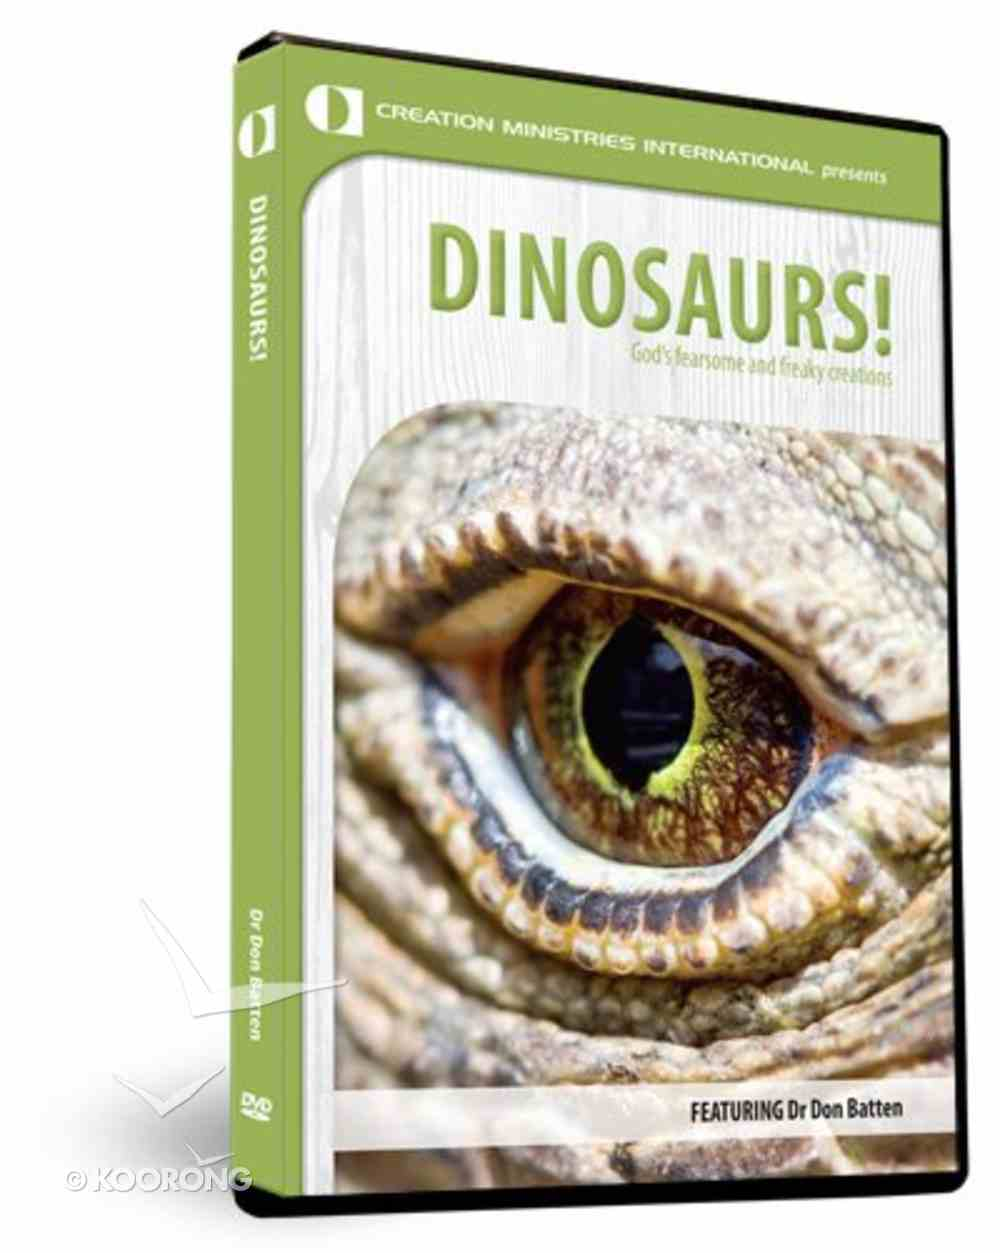 Dinosaurs!: God's Fearsome and Freaky Creations (2010 Usa Supercamp Series) DVD